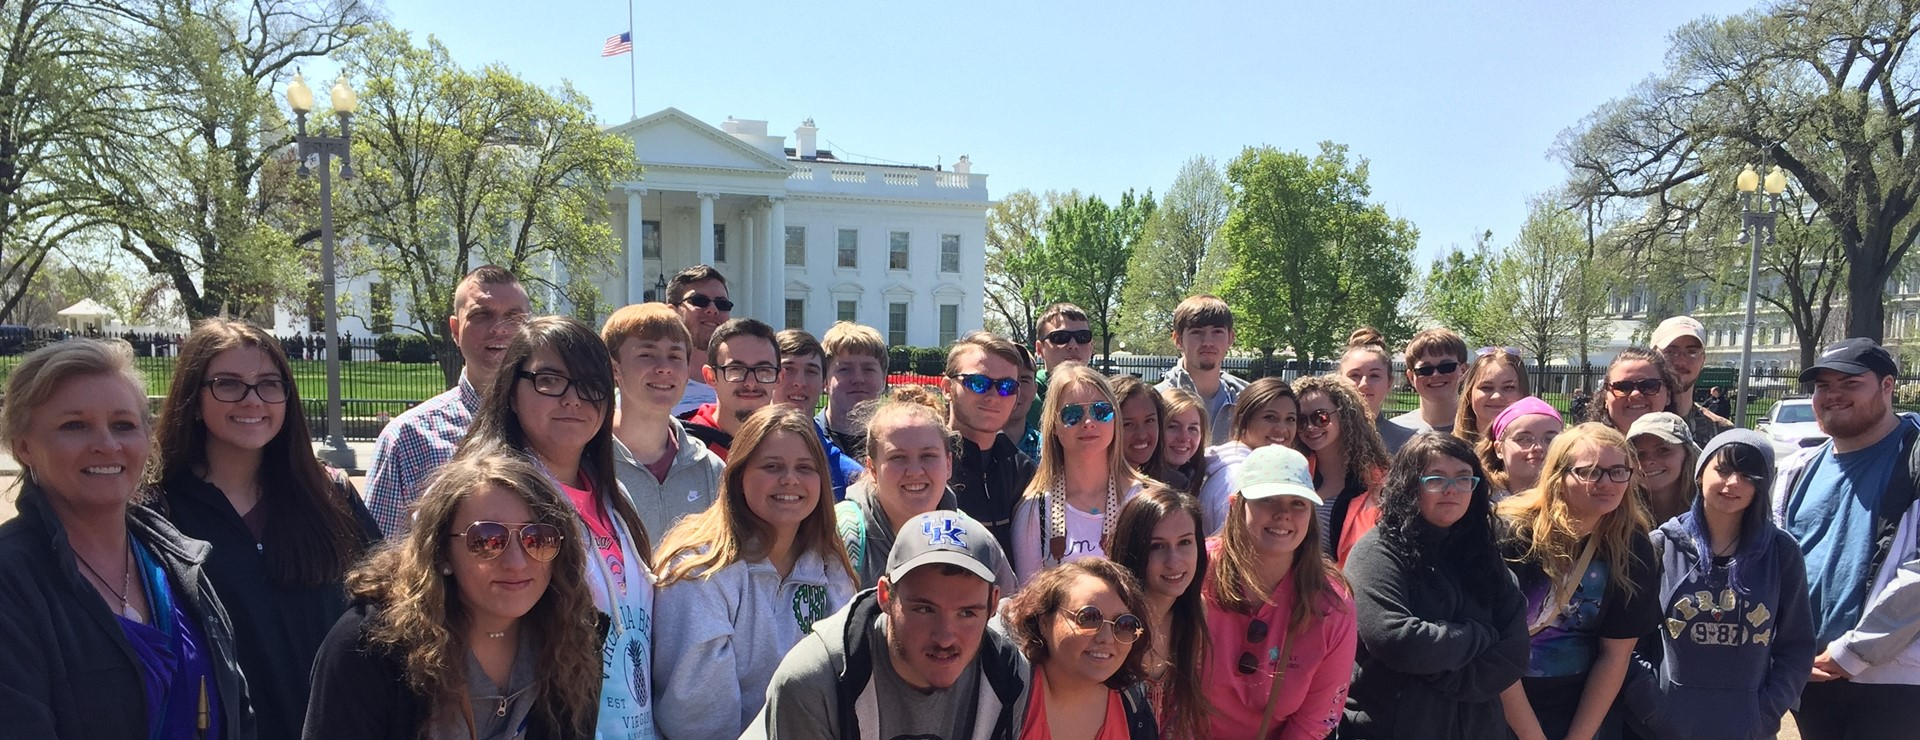 MCHS Seniors Outside the White House